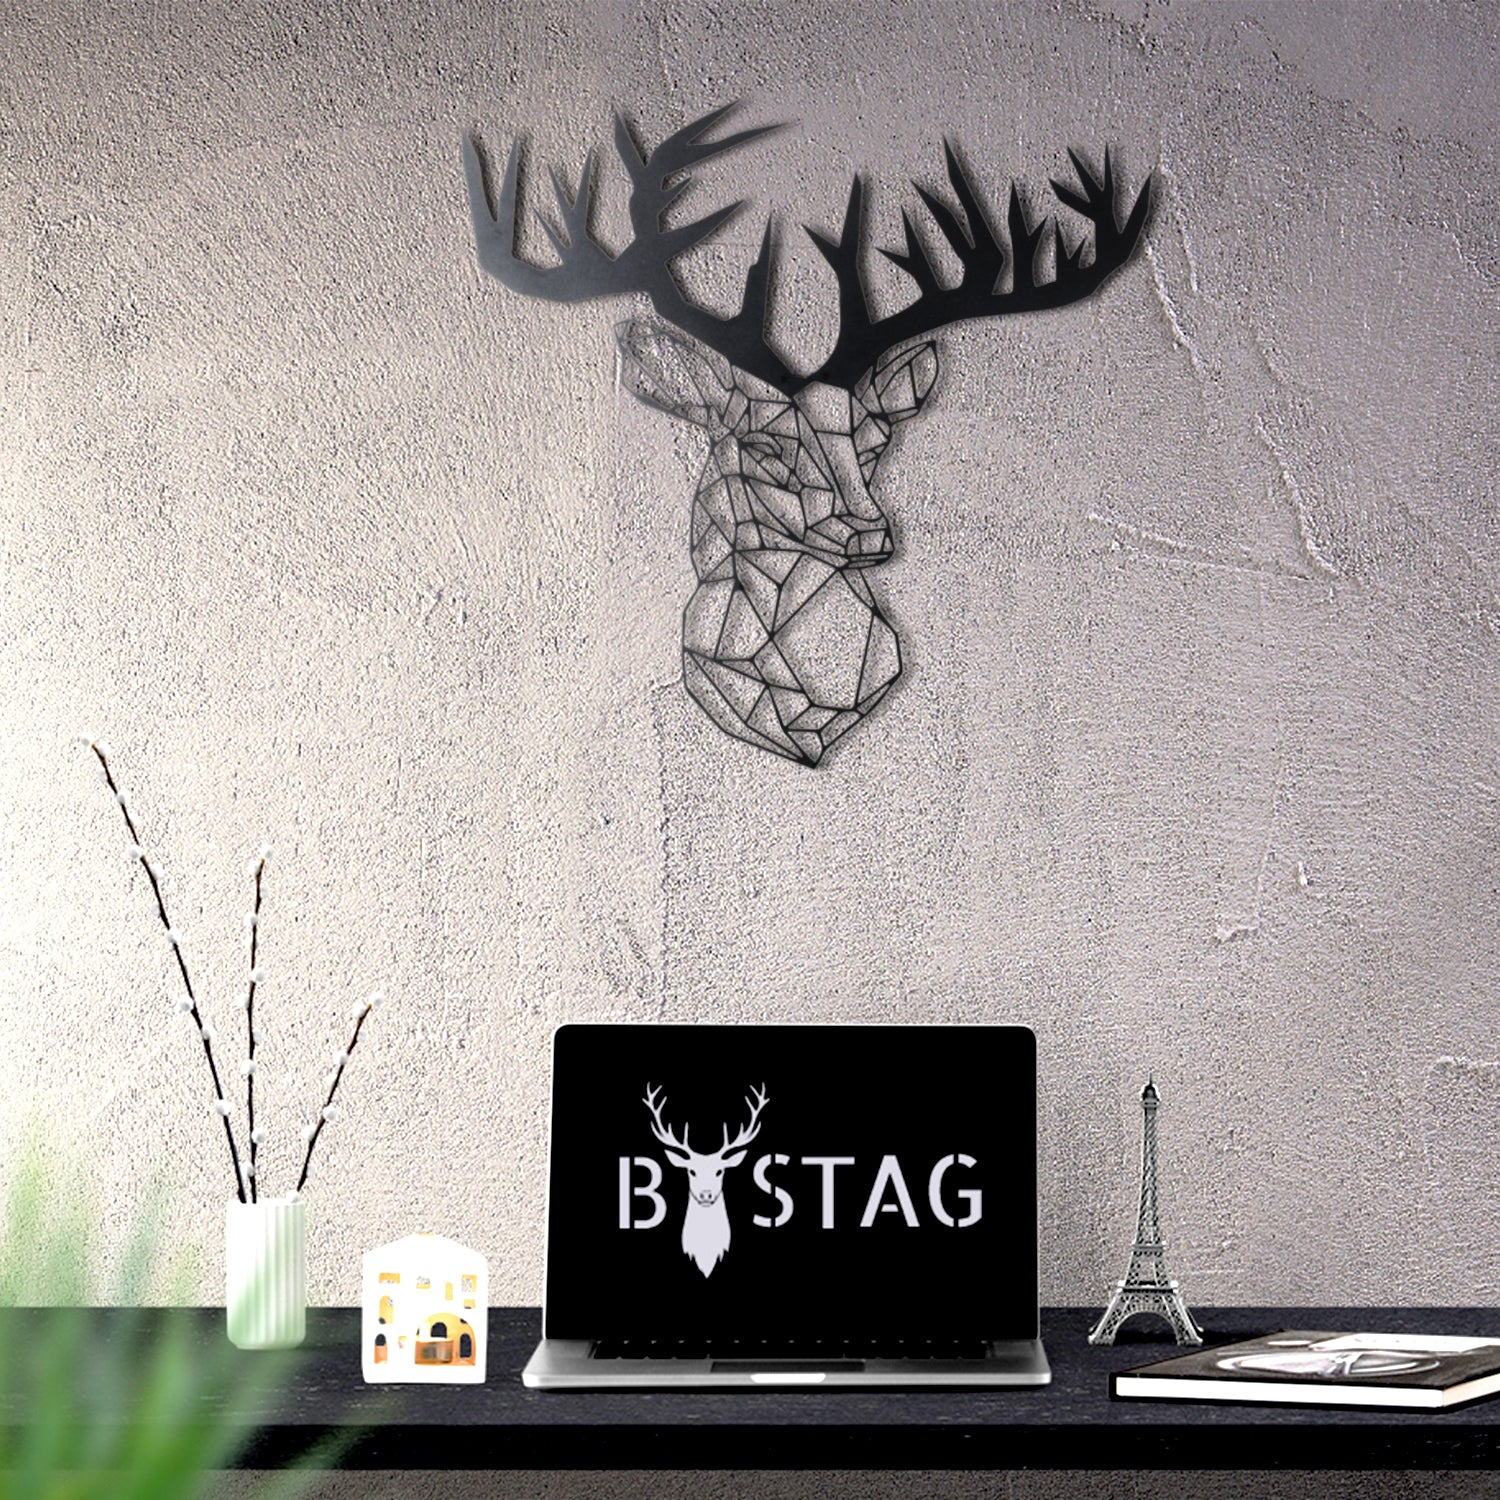 Bystag metal dekoratif duvar aksesuarı geyik- Bystag metal wall art-wall art-wall decor-metal wall decor-stag